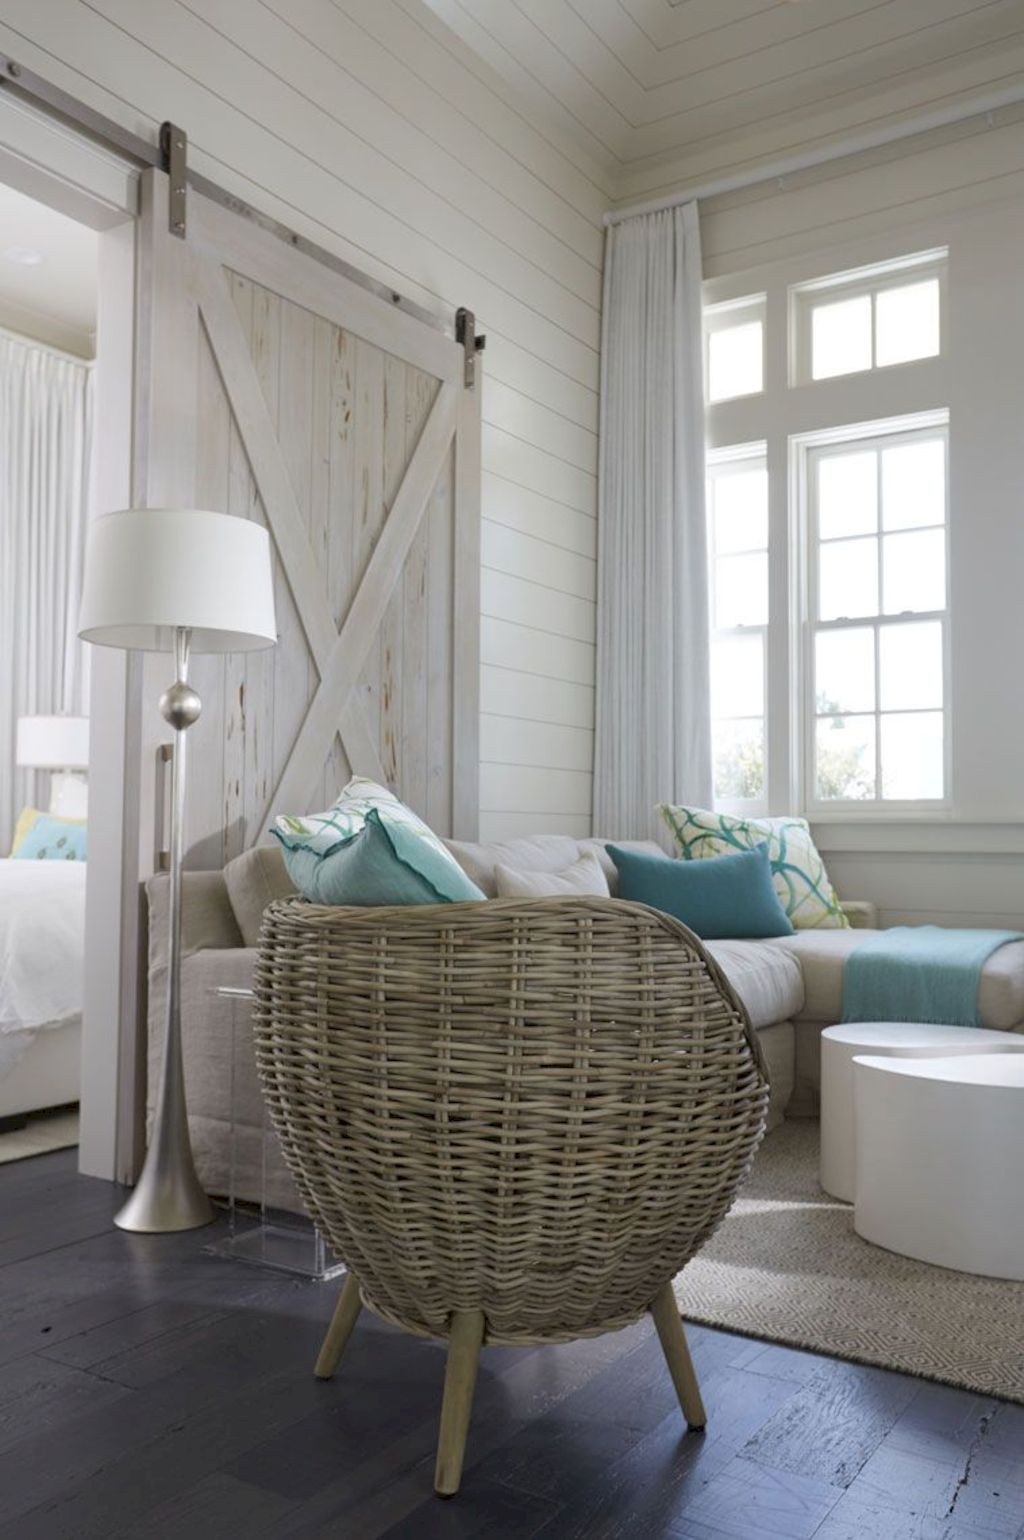 Refreshing home design with a coastal living theme and beach house style perfect inspirations for summer home updates Image 39